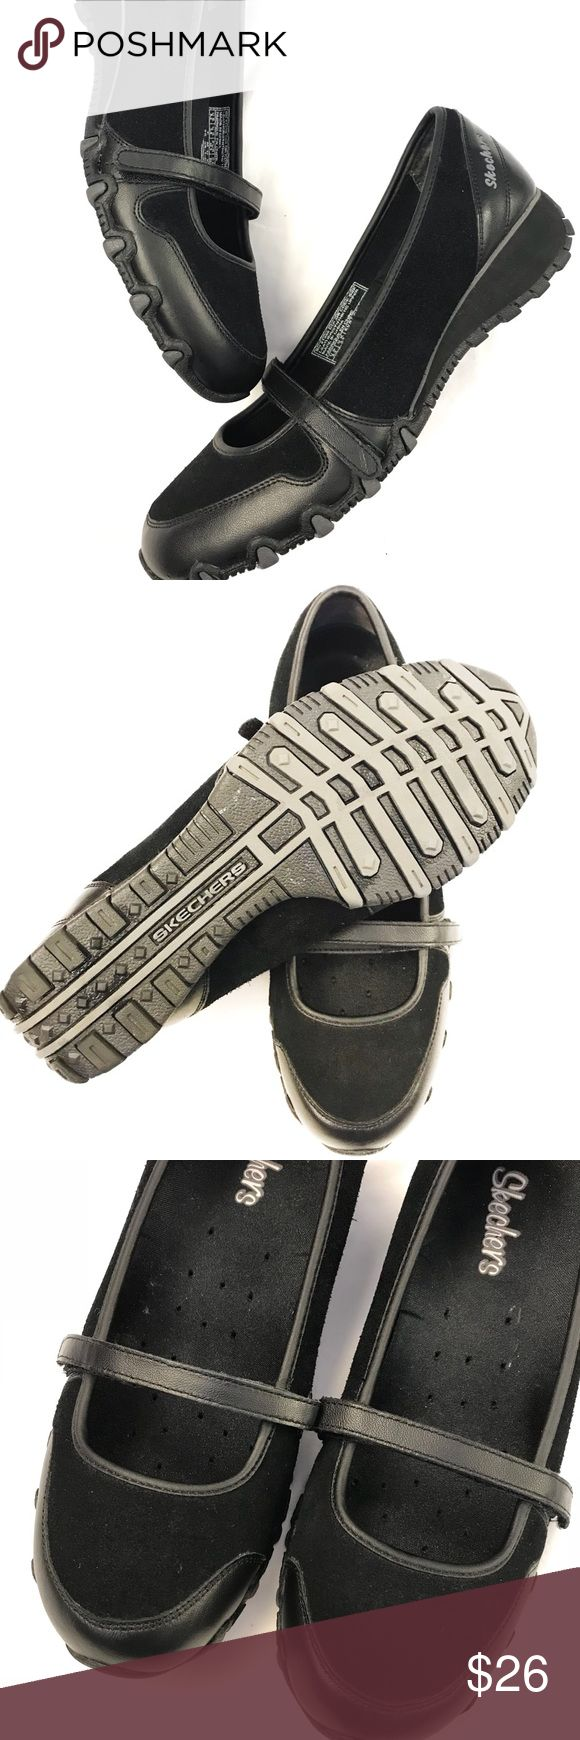 Skechers Casual Slip on Shoe Like new Skechers casual skip on shoe with suede and leather trims. Features a single strap over foot. Extra comfortable. Worn once, looks and smells new! Skechers Shoes Flats & Loafers